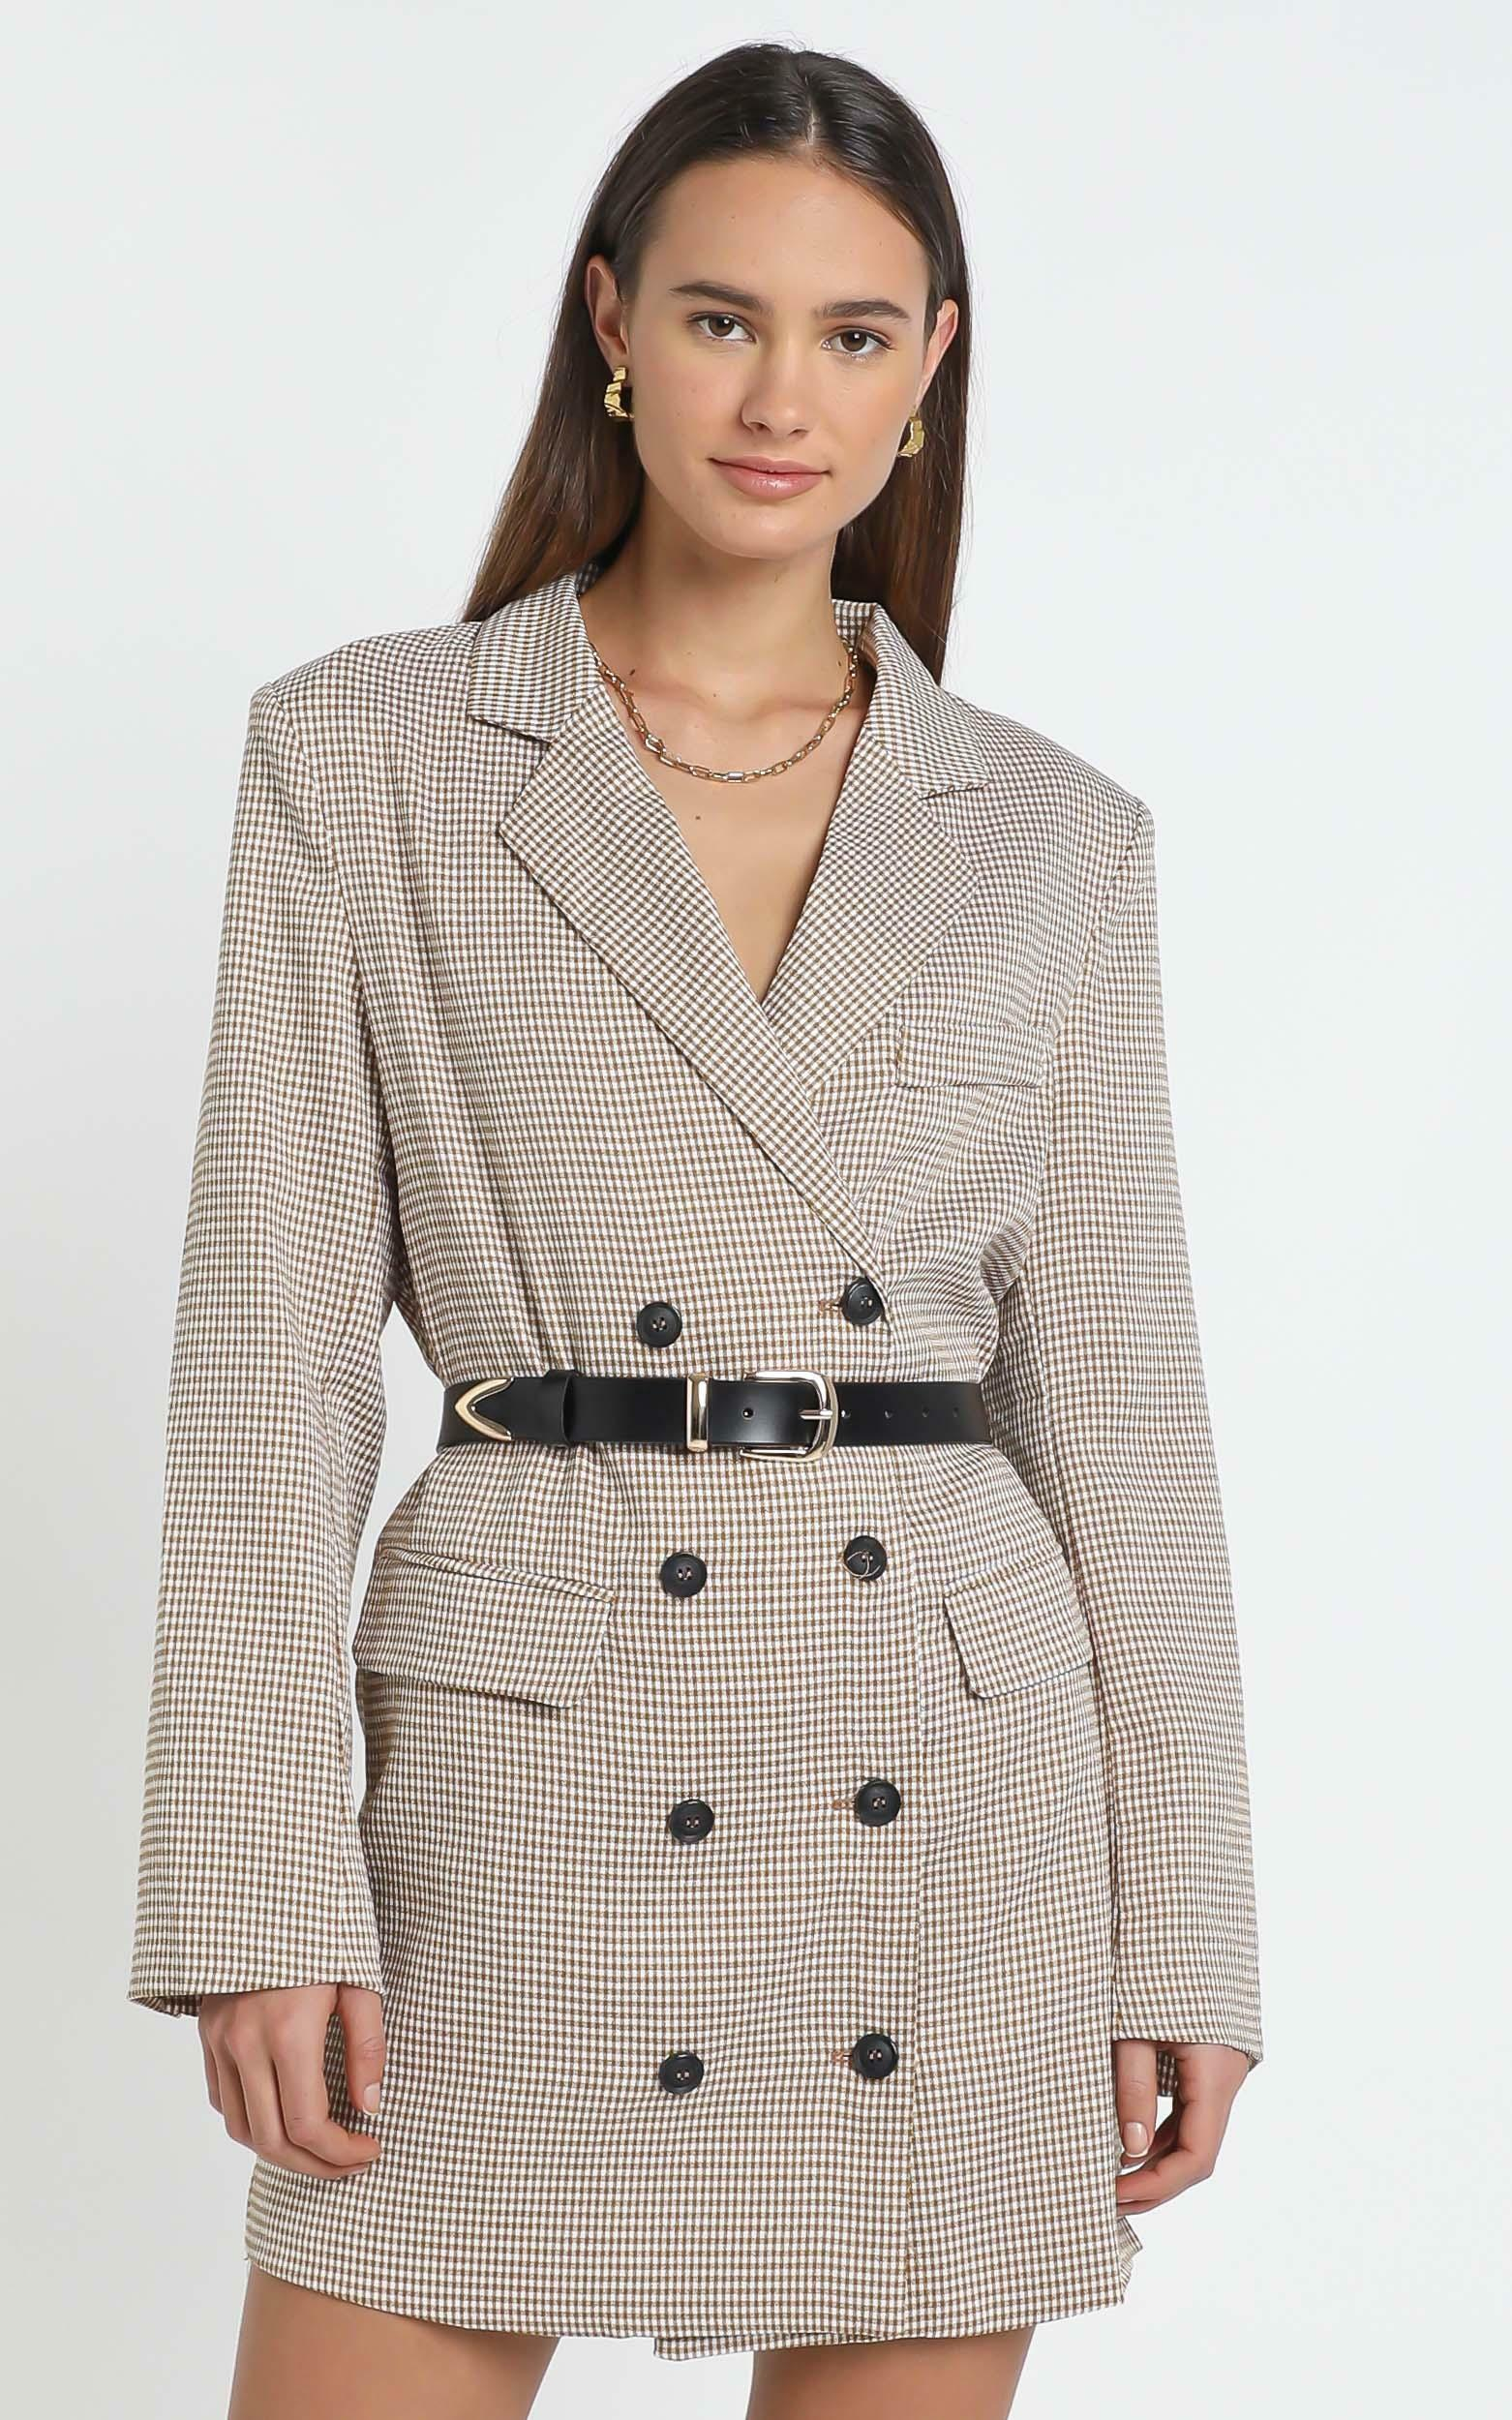 Lioness - Moulin Rouge Blazer Dress in Beige Check - 12 (L), Beige, hi-res image number null